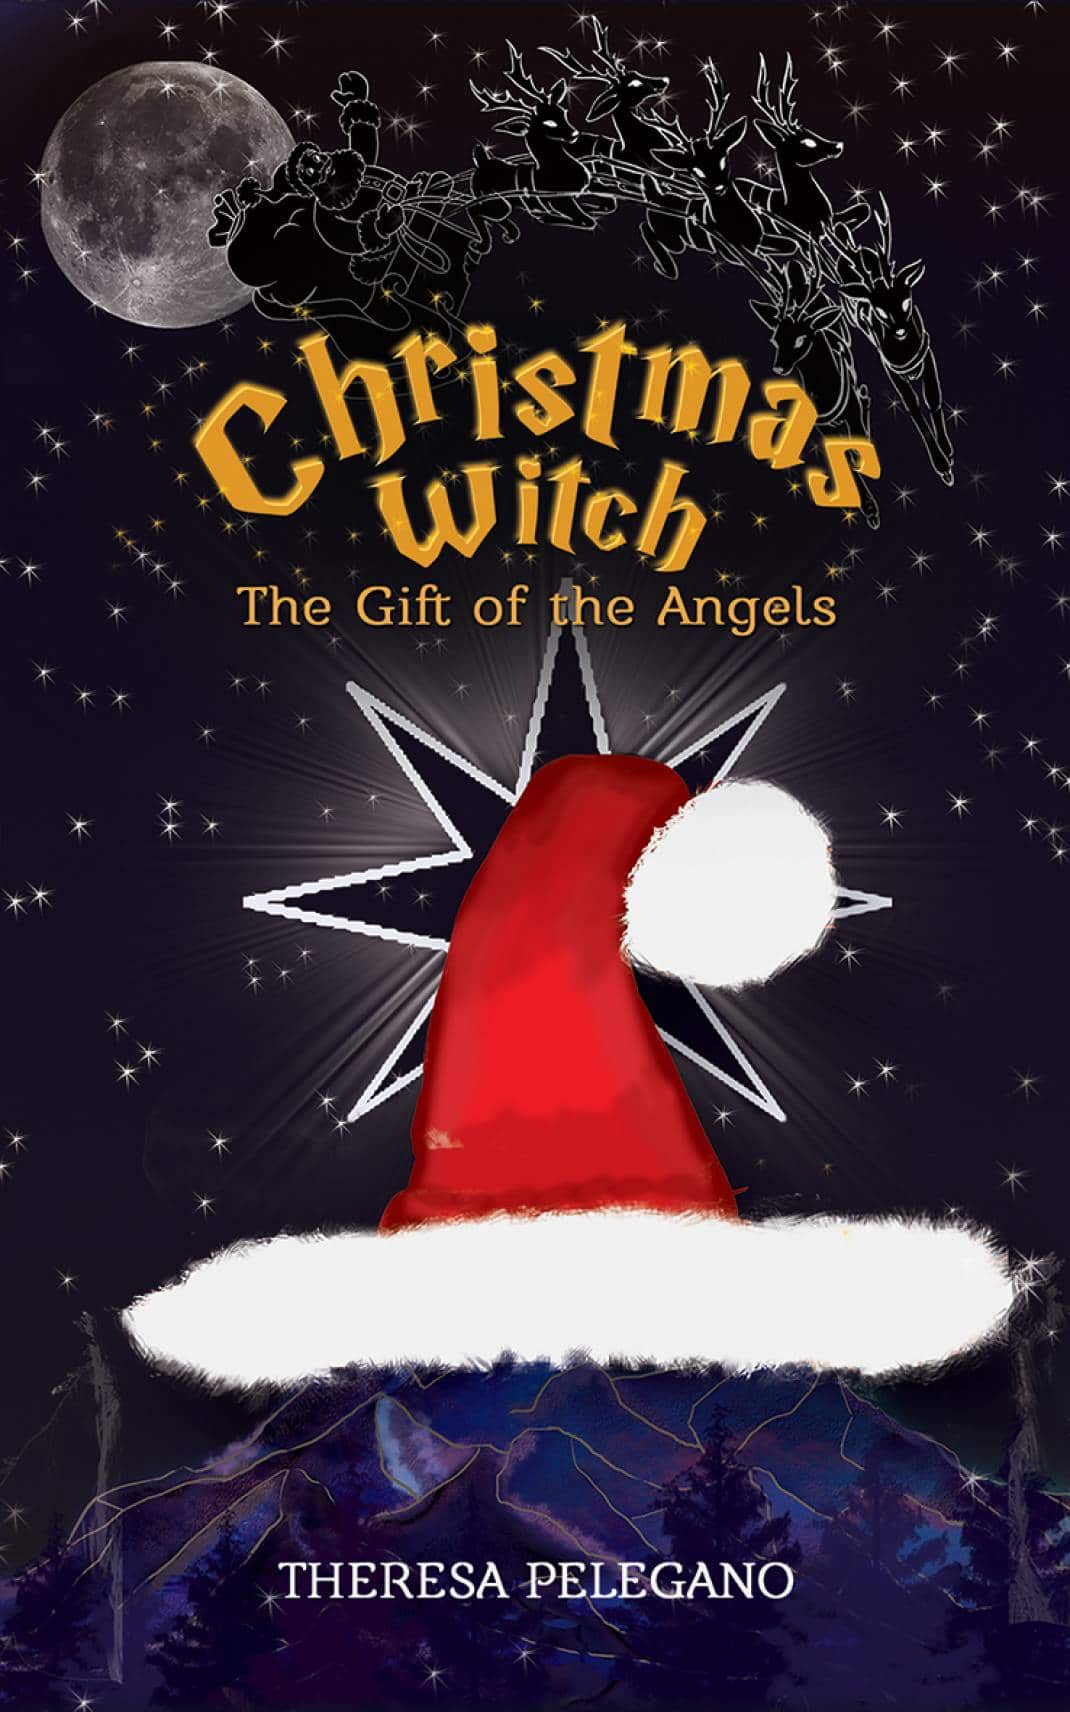 Christmas Witch, The Gift of Angels. Jessica Winters is an awkward teen. She always seems to be in the wrong place at the wrong time, and bad things happen. Bullied by other kids for her appearance, she clings to the few friends she has. Nick Claus has always been protective of Jessica. Since she arrived on campus and Nick's archenemy started to pick on her, Nick had her back. Click the Buy Now button to learn more.